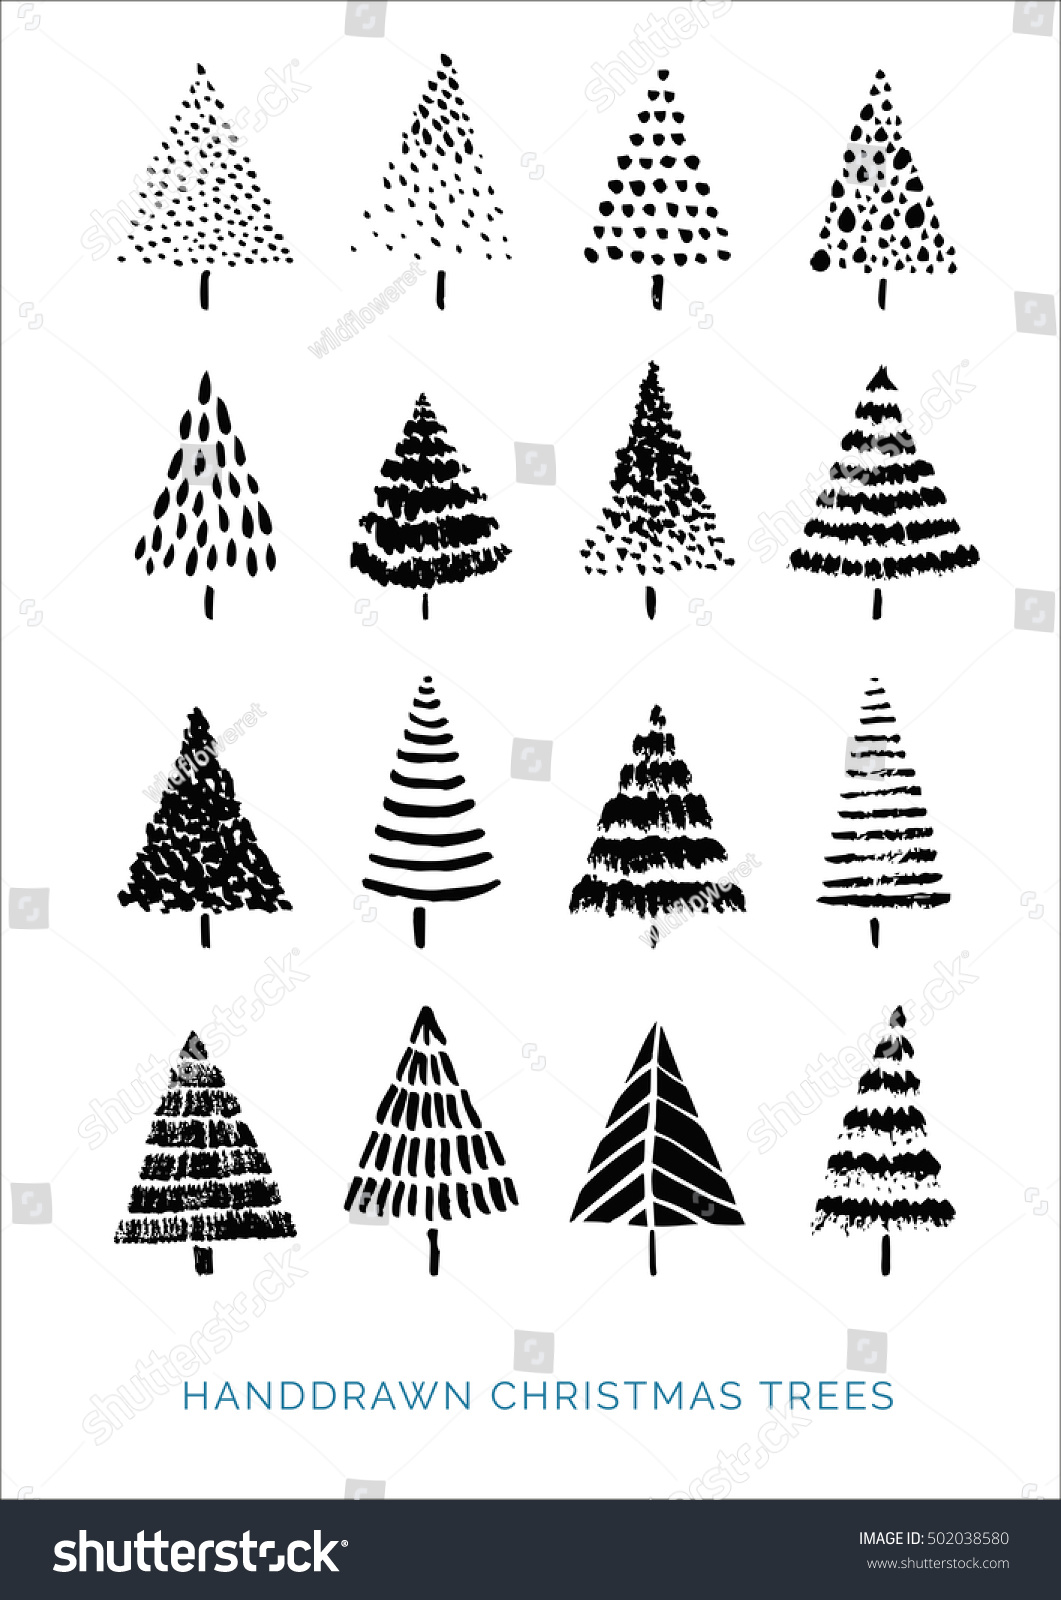 Uncategorized Drawn Christmas Trees set hand drawn christmas trees your stock vector 502038580 the of for design abstract geometric symbols and shapes